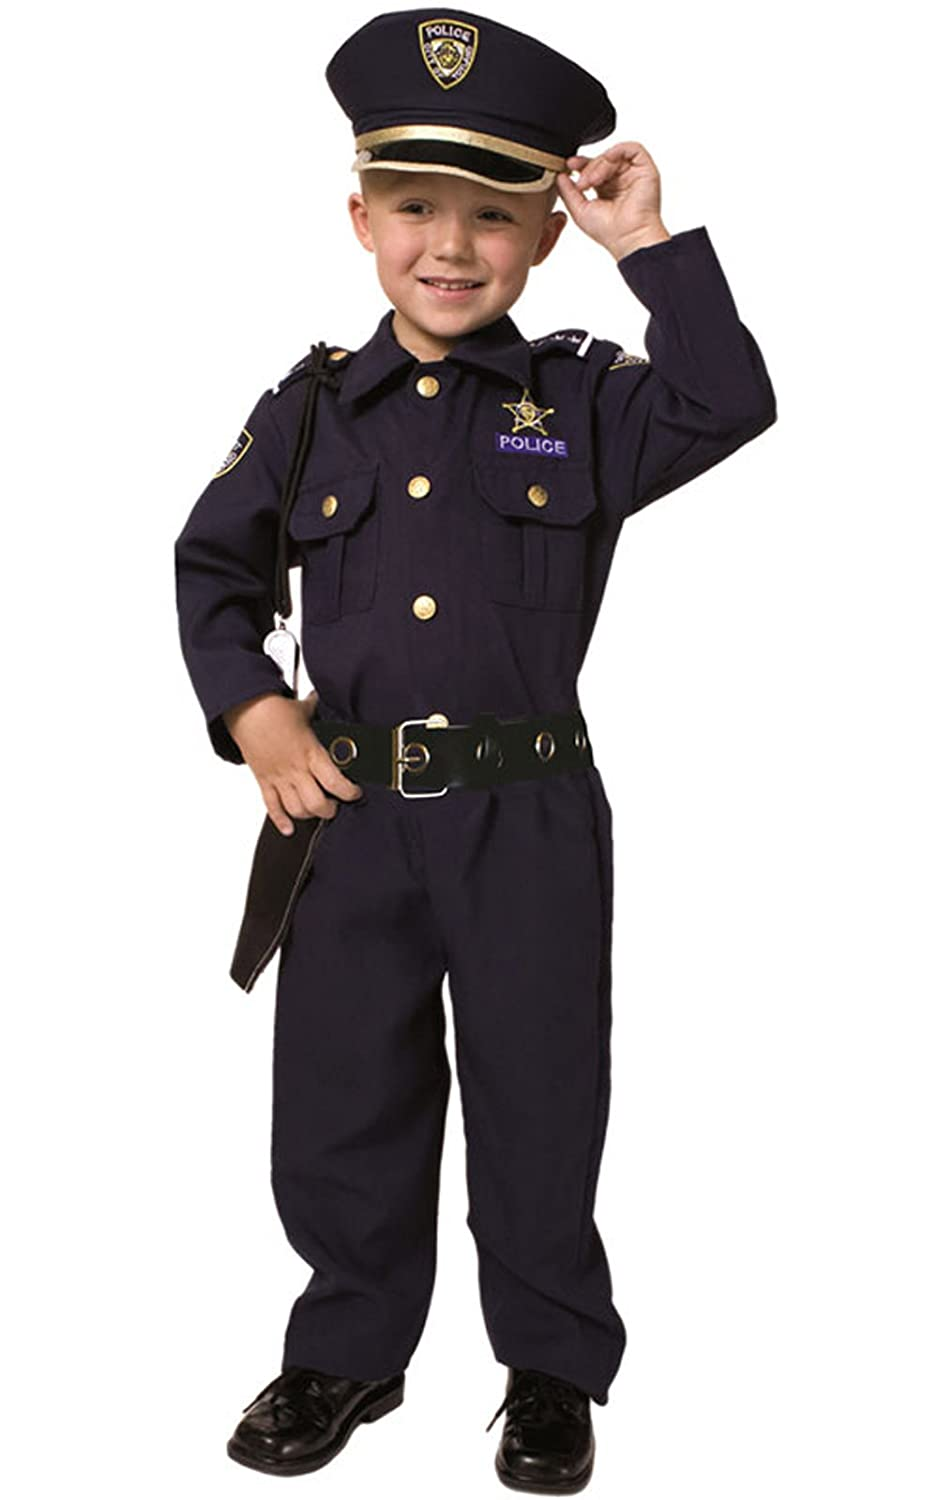 Dress Up America Deluxe Police Dress Up Costume Set - Includes Shirt,  Pants, Hat, Belt, Whistle, Gun Holster